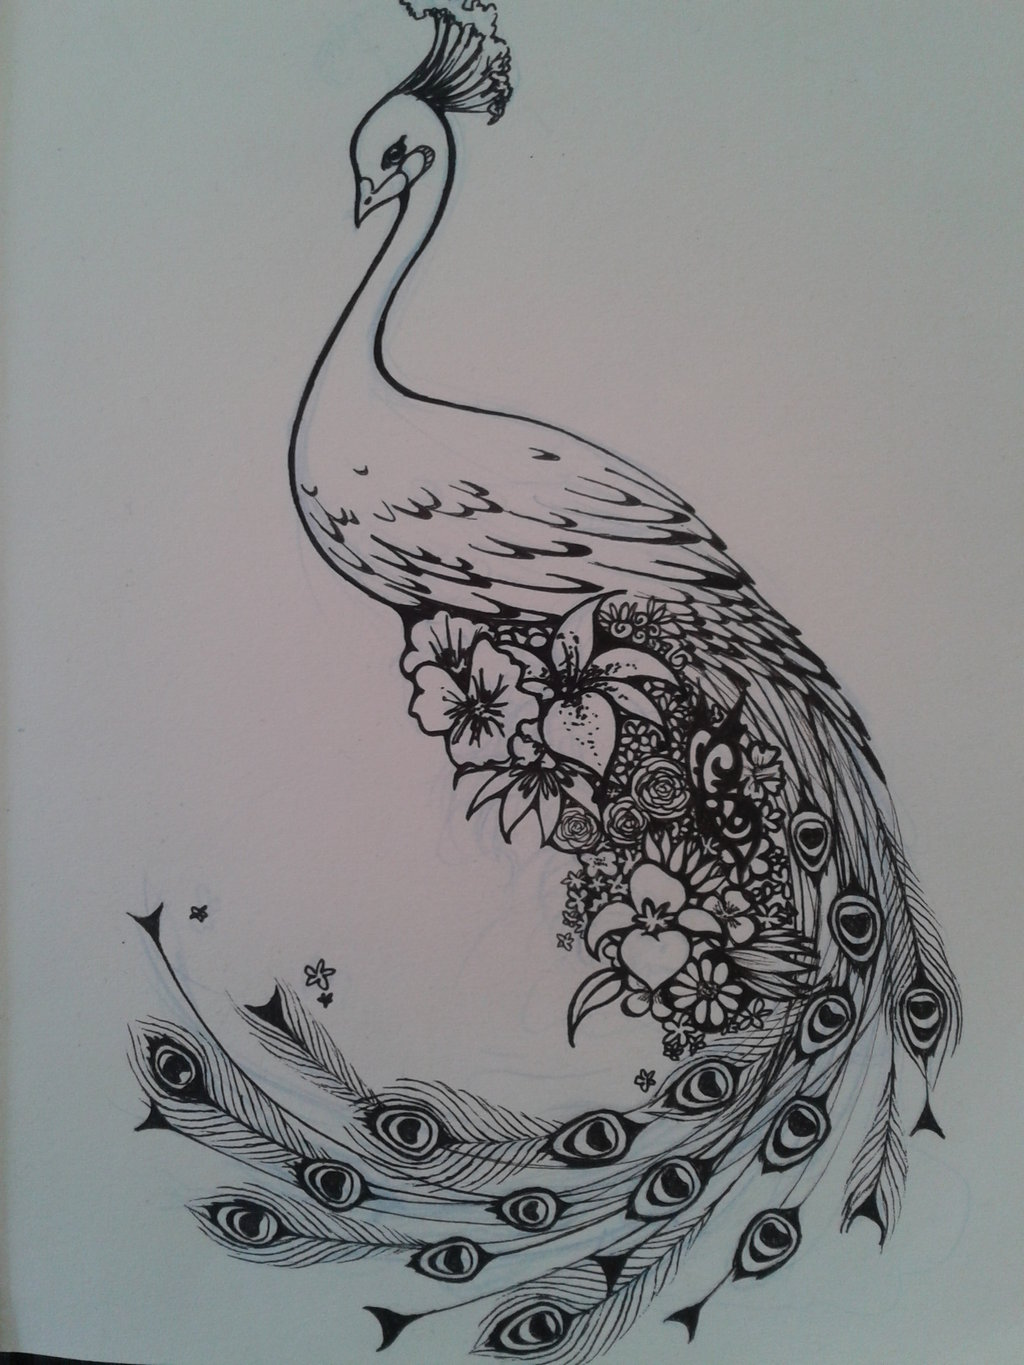 Peacock flower tattoo designs - Peacock Tattoo Designs Page 5